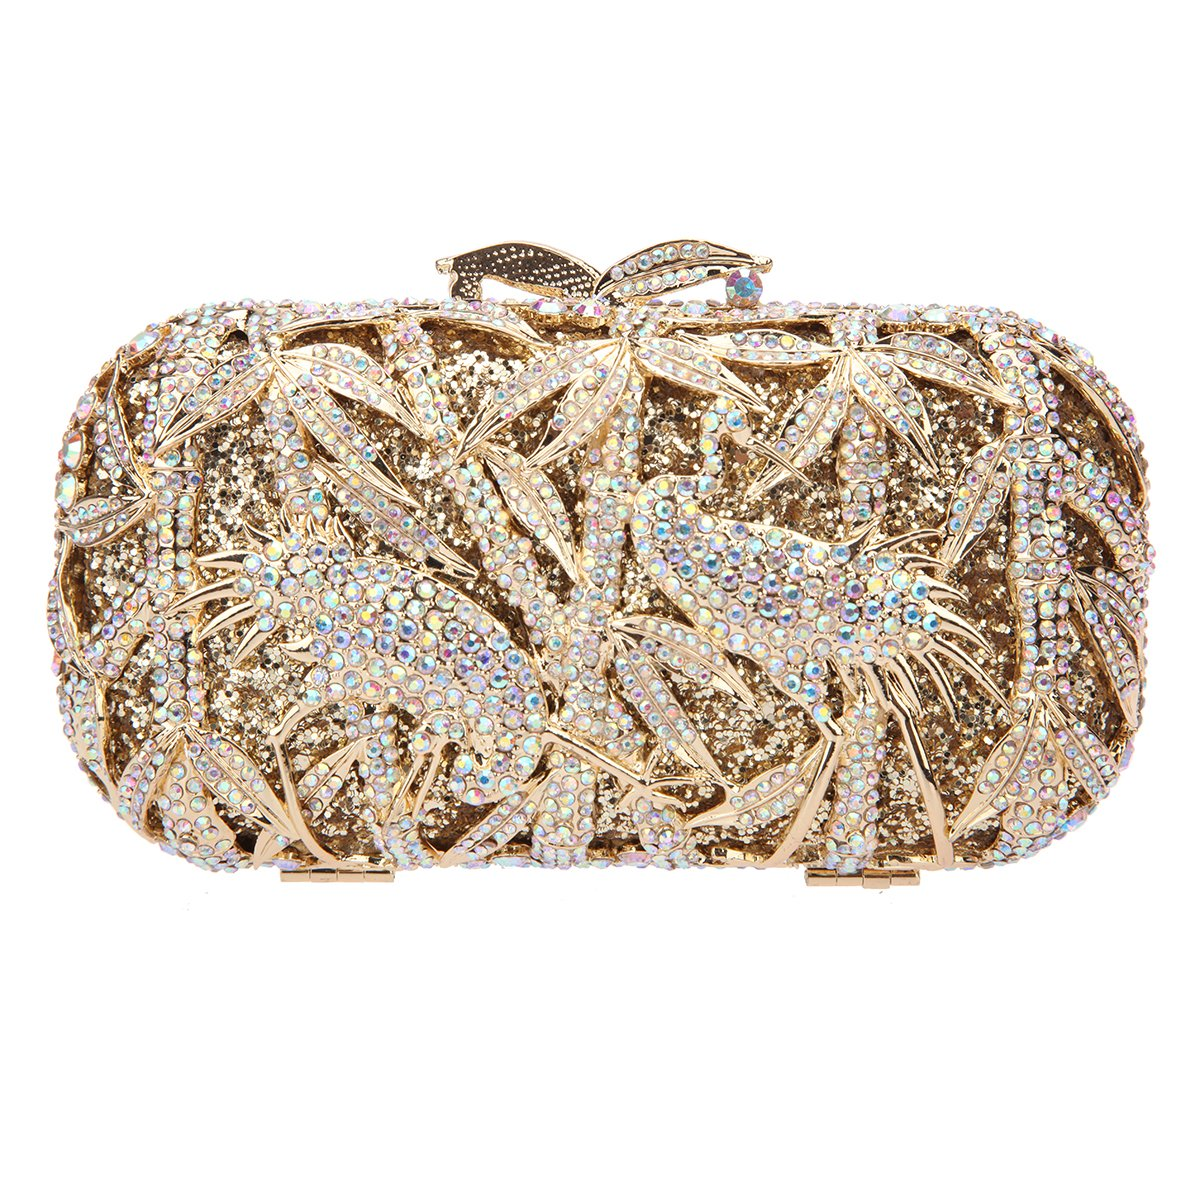 Fawziya bamboo crane pattern crystal clutch purse rhinestone clutch evening  bag ab gold shoes jpg 1200x1200 75a1b23b76fea